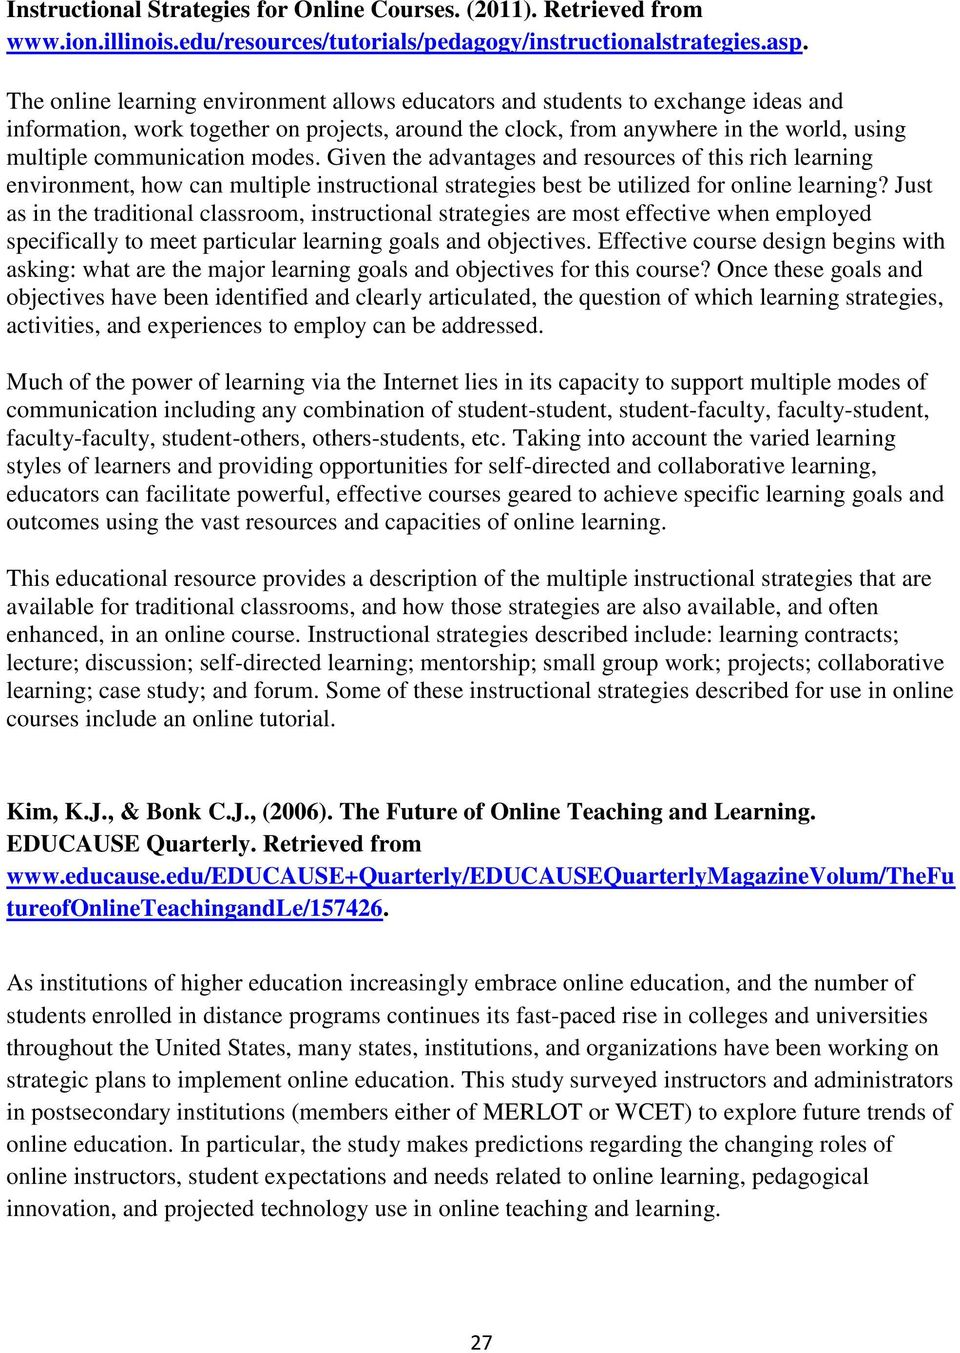 modes. Given the advantages and resources of this rich learning environment, how can multiple instructional strategies best be utilized for online learning?